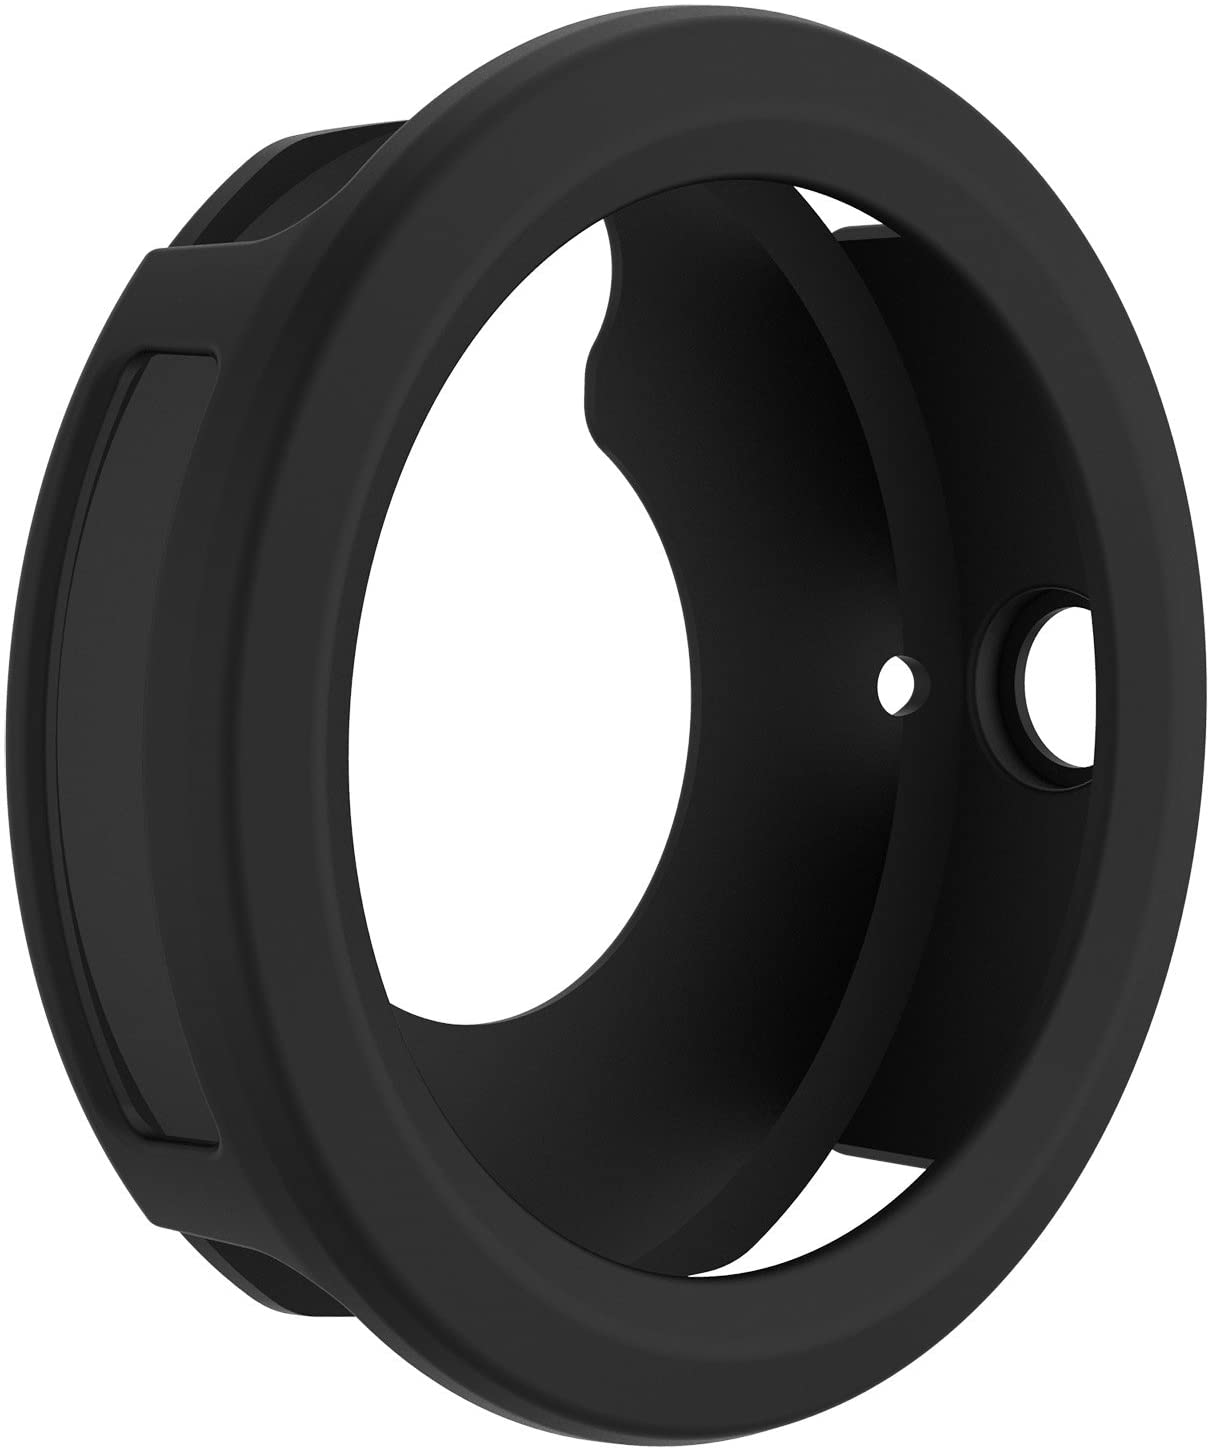 FitTurn Case for Garmin Vivoactive3, Shock-Proof and Shatter-Resistant Protective Band Cover Case for Garmin Vivoactive3(Black)